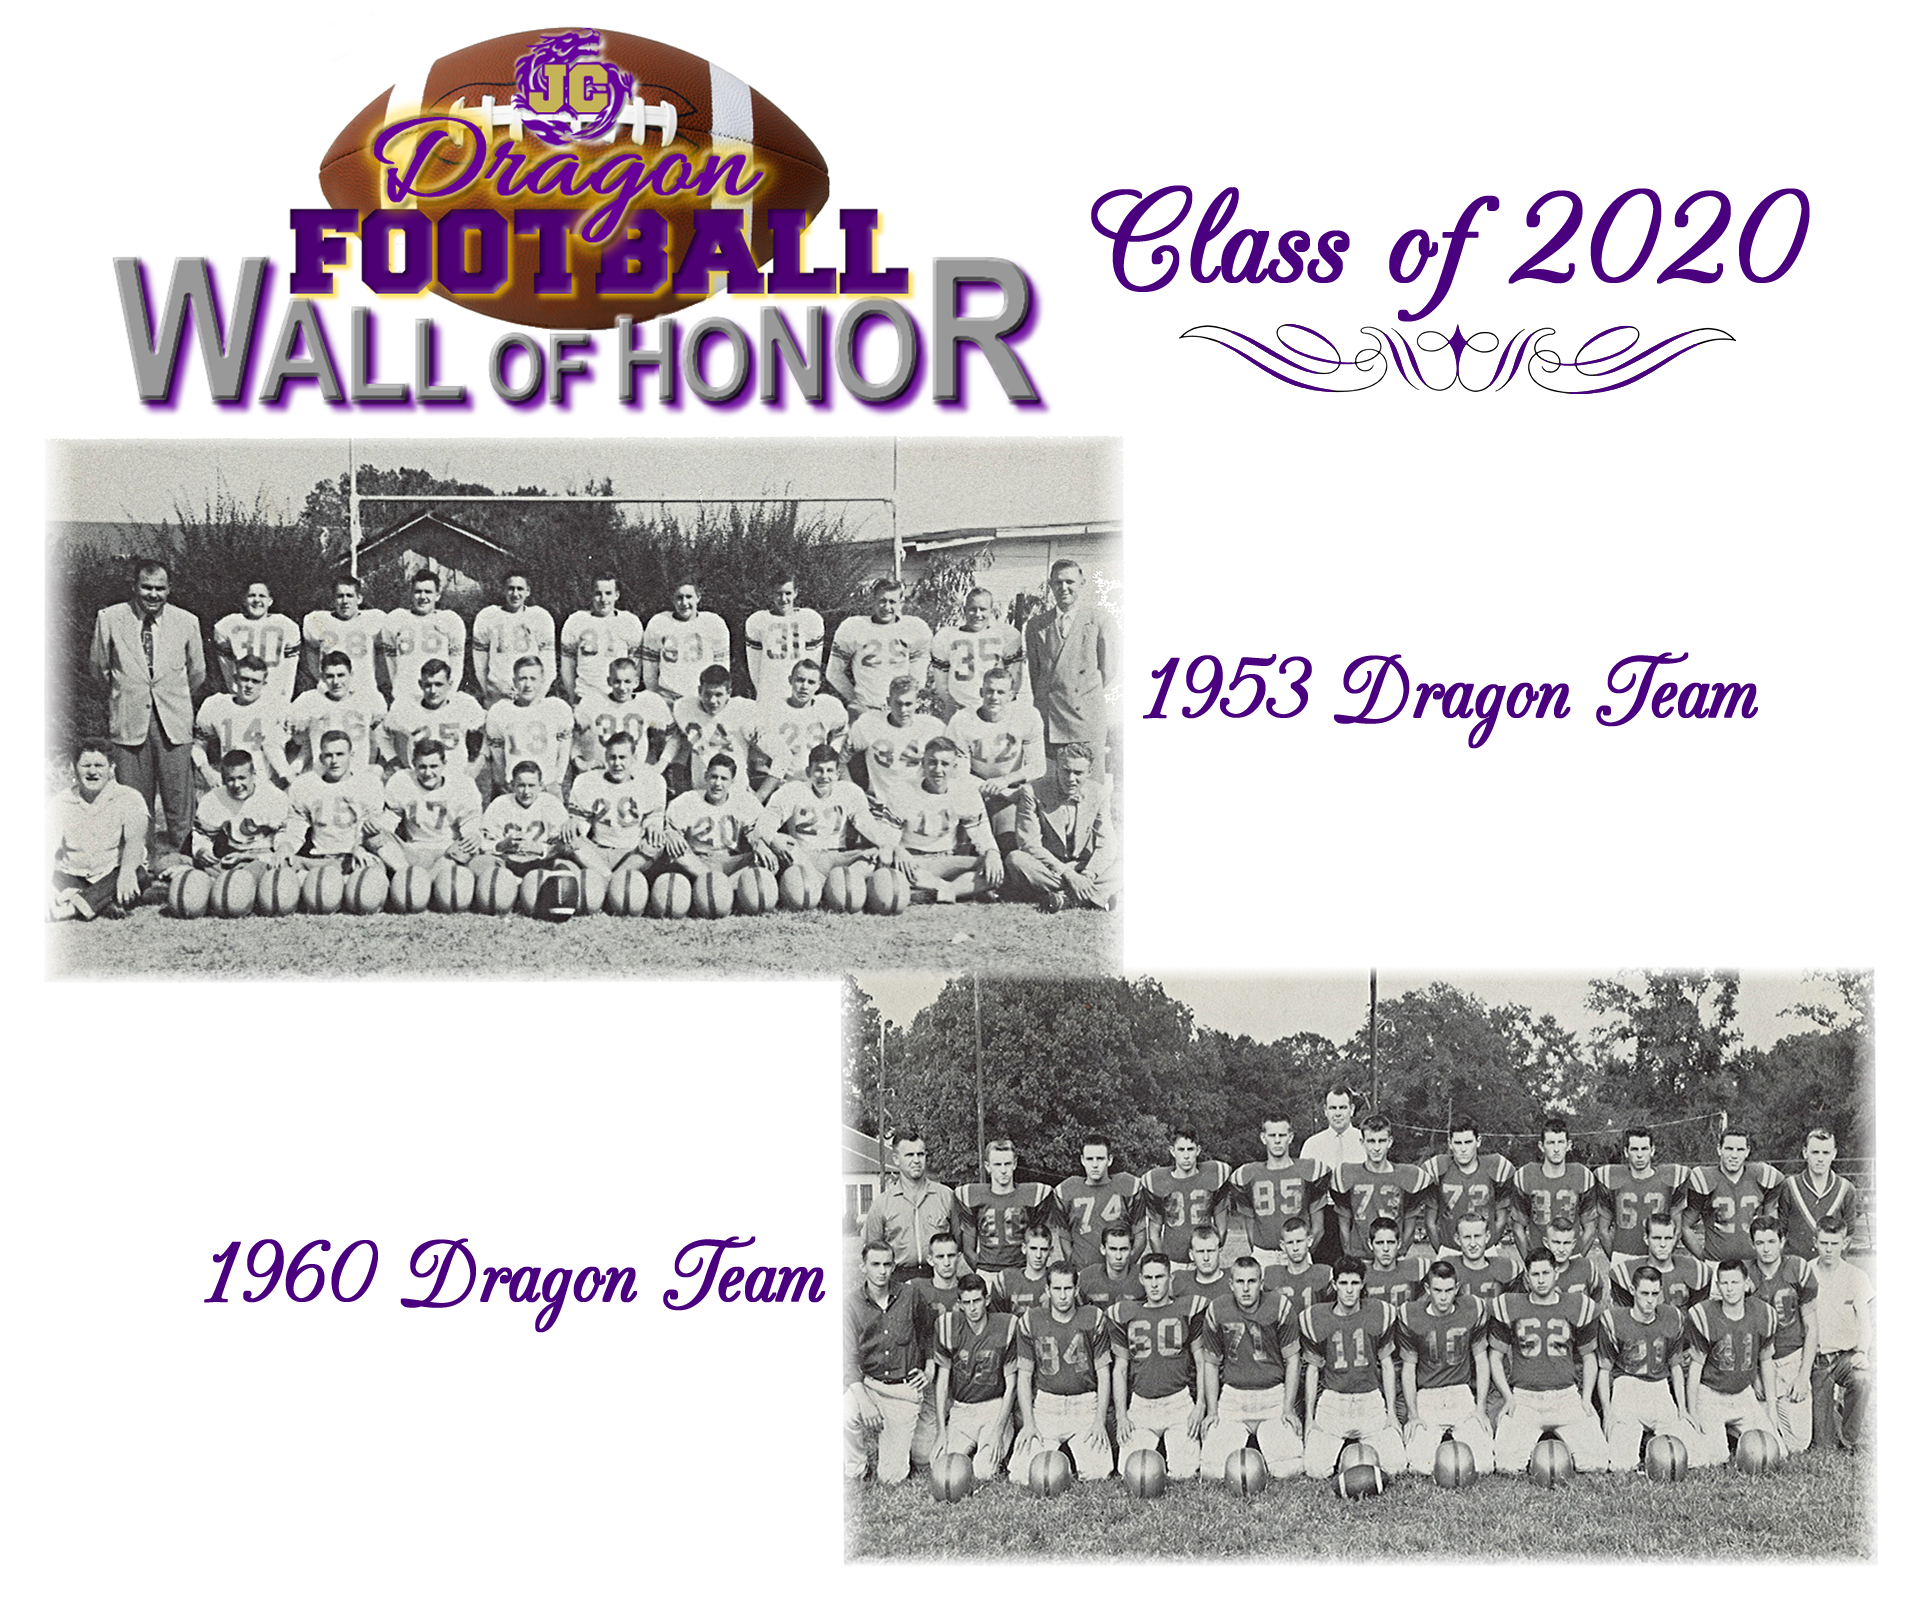 1953 Dragon Team and the 1960 Dragon Team